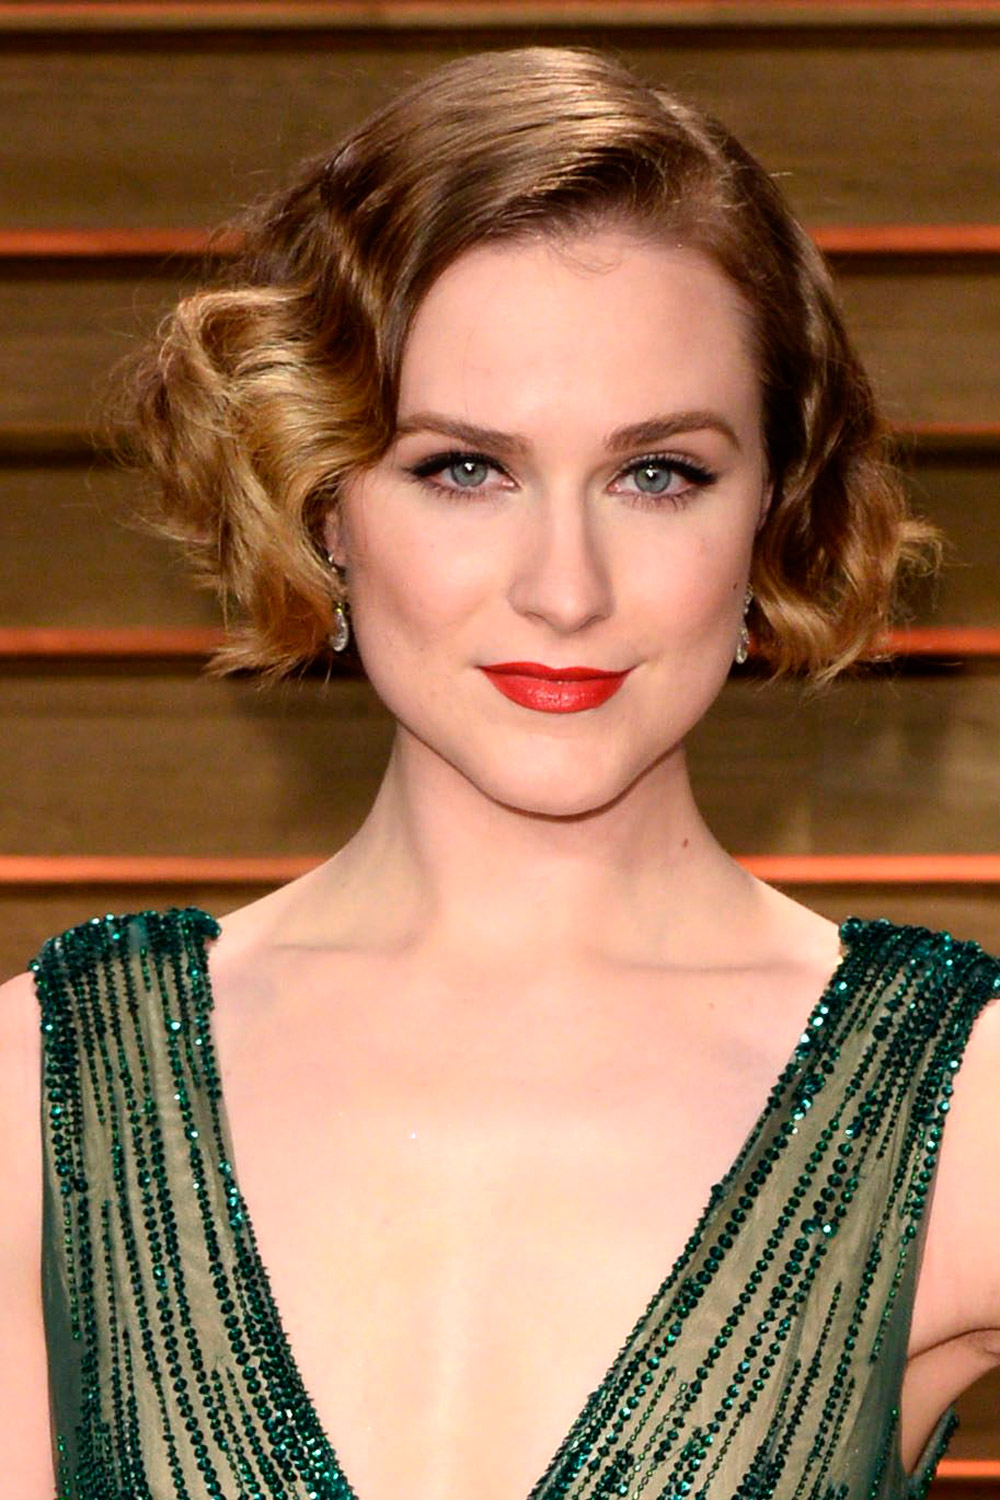 short hairstyles: 100+ celebrity cuts to inspire your new 'do